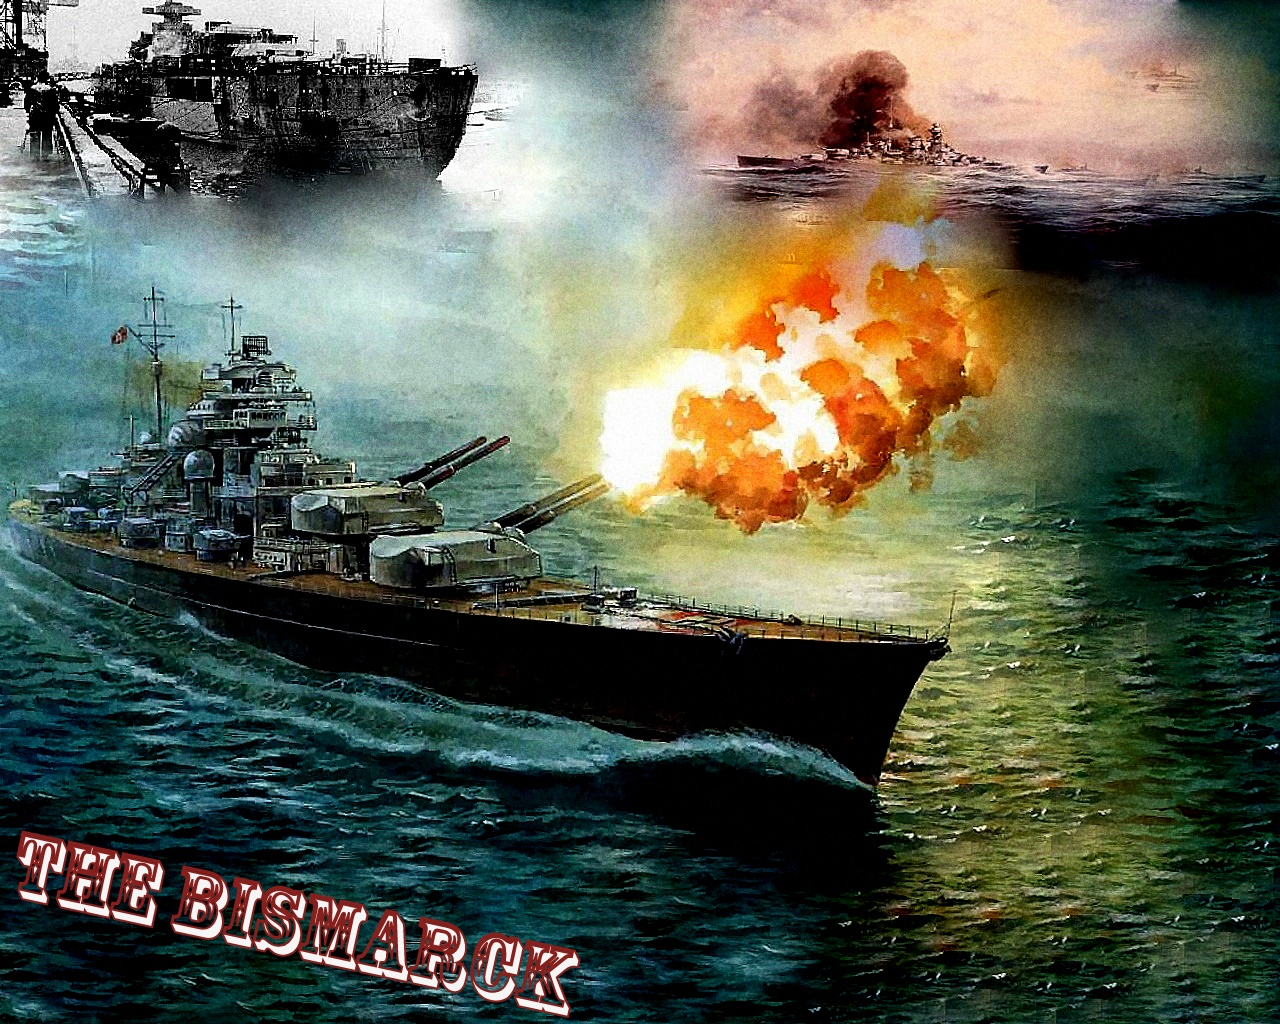 """bismarck was a past master in W carr """"bismarck was a past master in the diplomatic arts"""" w carr as long as william i lived, german foreign policy was conducted by bismarck alone m sturmer """"bismarck cultivated alliances with both russia and austria, but due to the stirrings of the balkan slavs against their turkish overlords, this became increasingly difficult""""."""